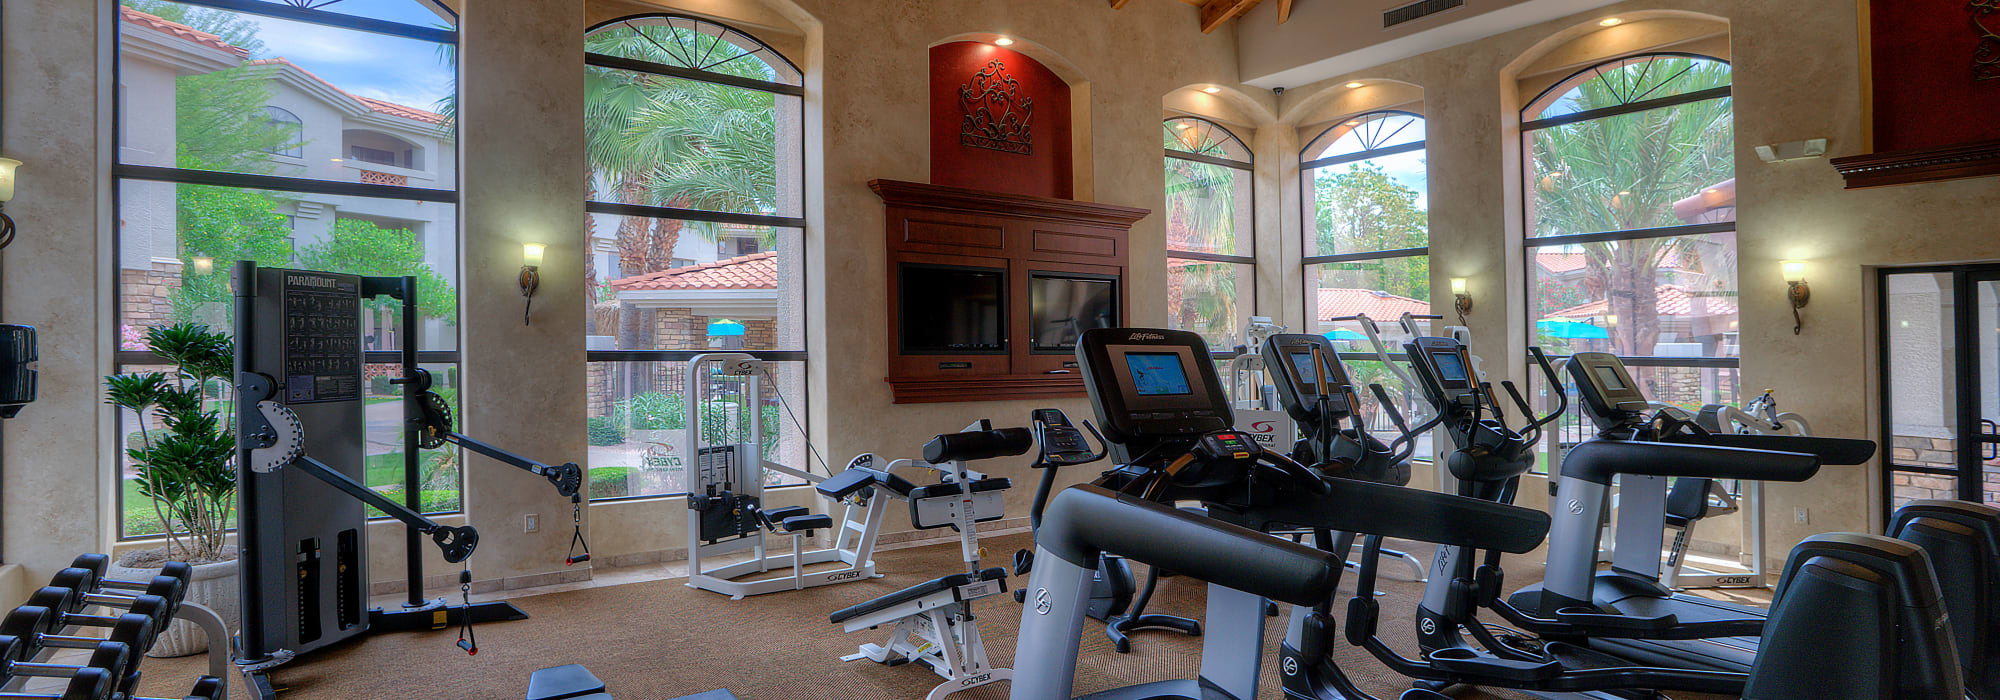 Luxury indoor gym at San Marbeya in Tempe, Arizona